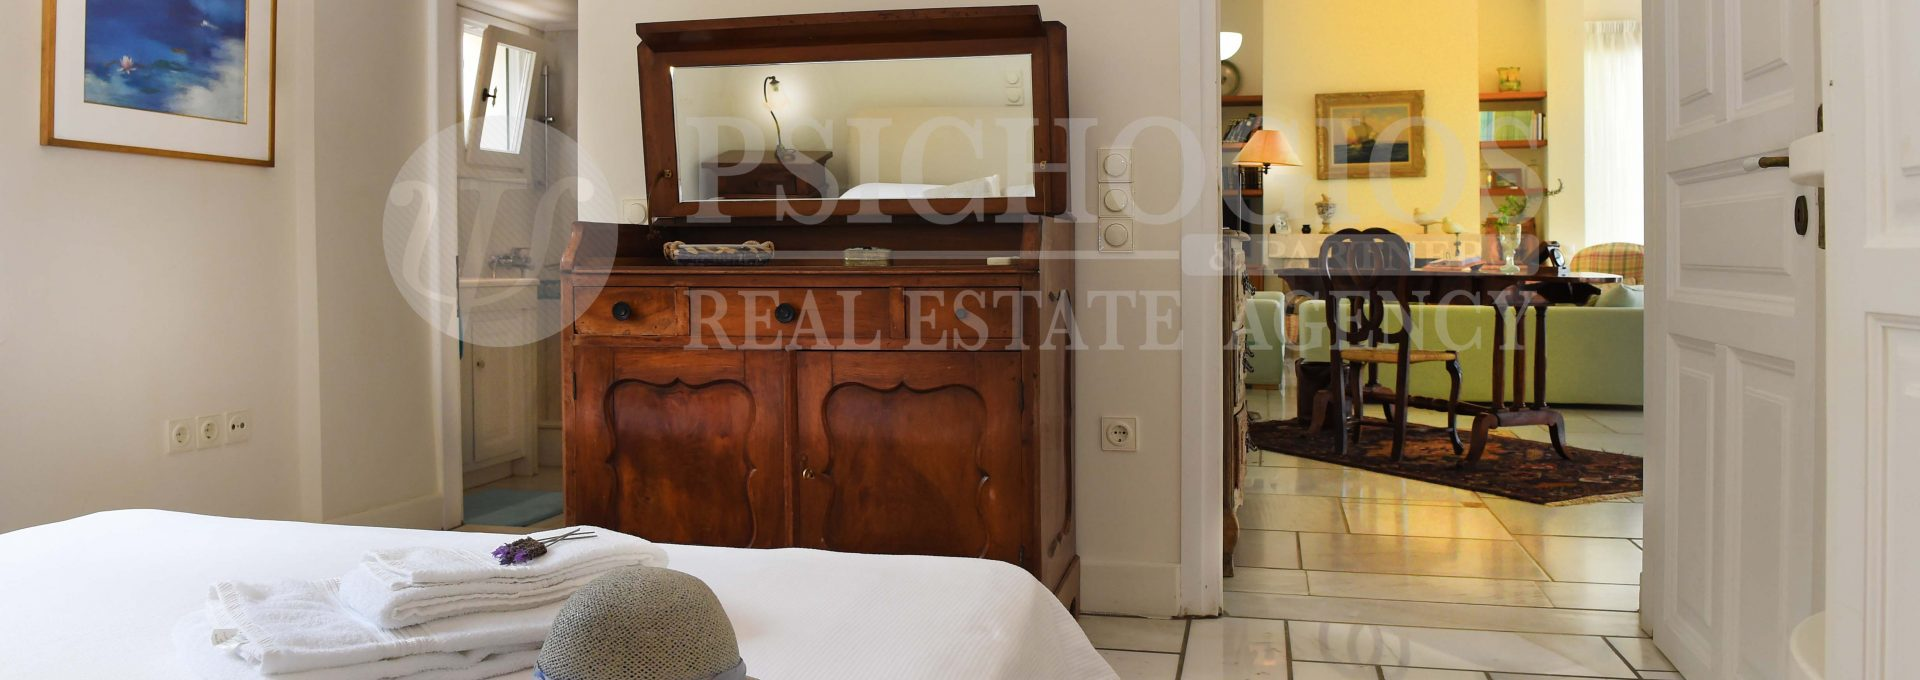 for_rent_house_600_square_meters_sea_view_porto_heli_greece (126)